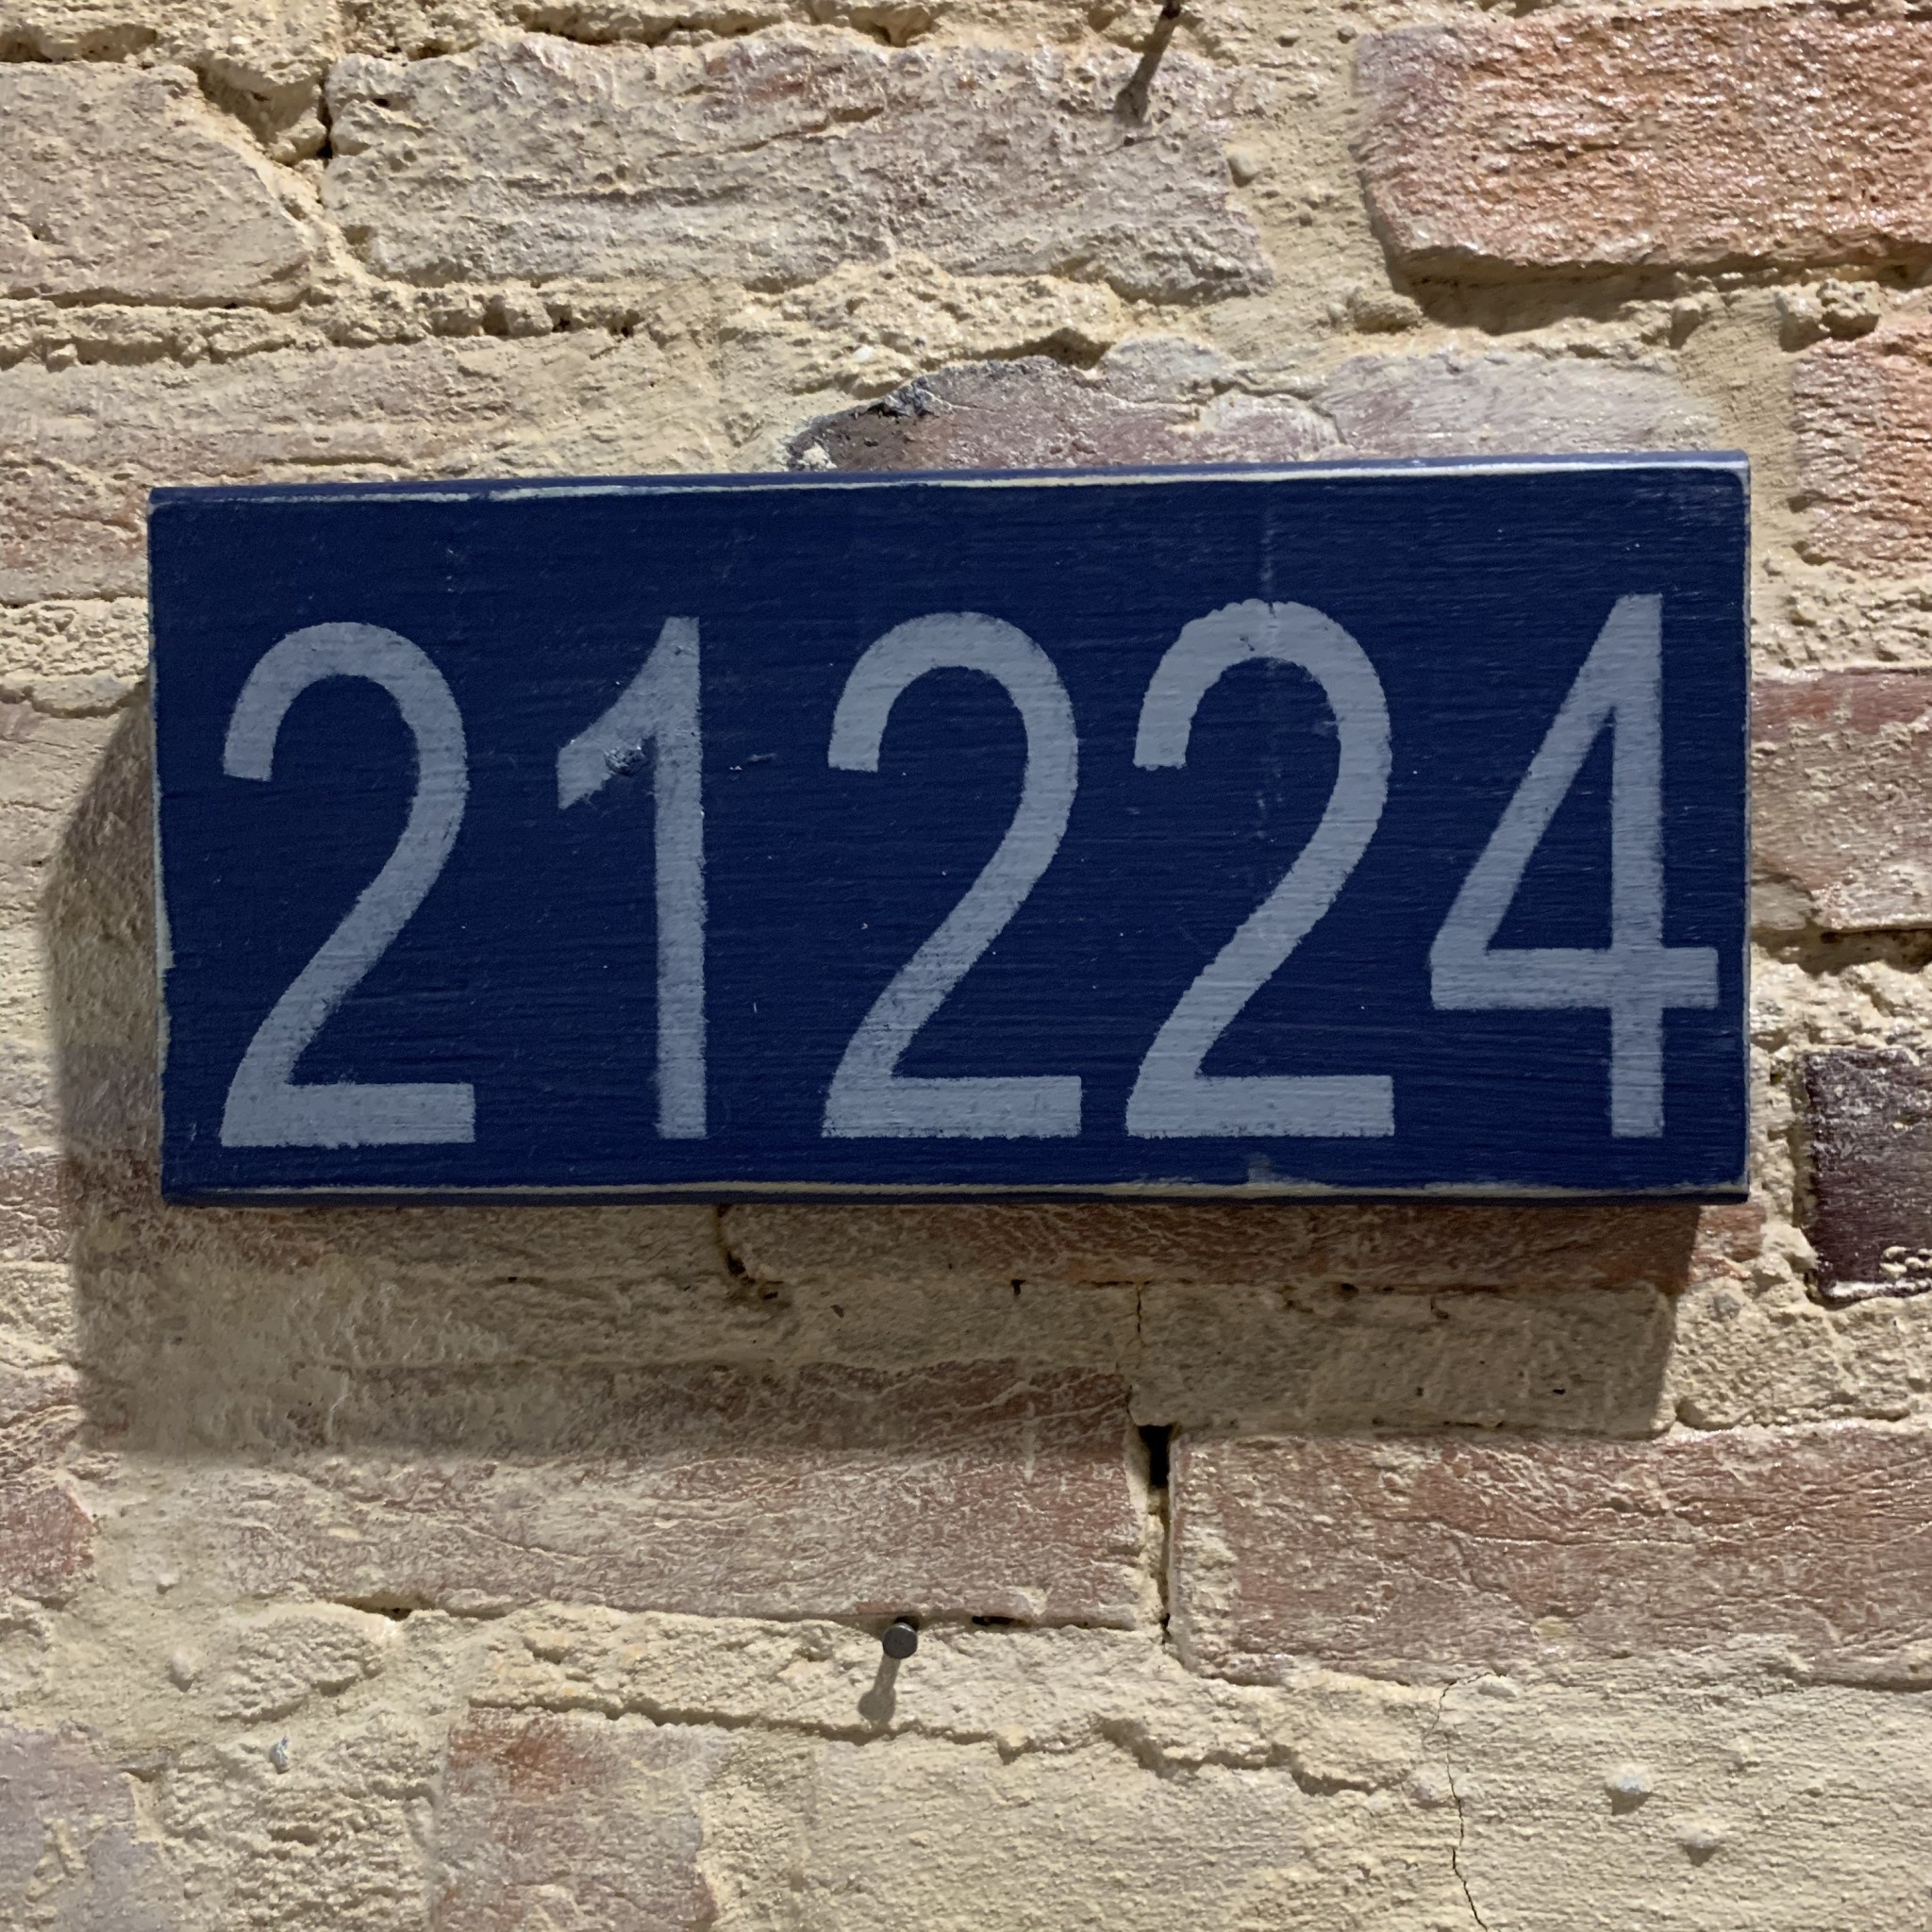 The Painted Mermaid 21224 Zip Code Sign - Navy/Gray